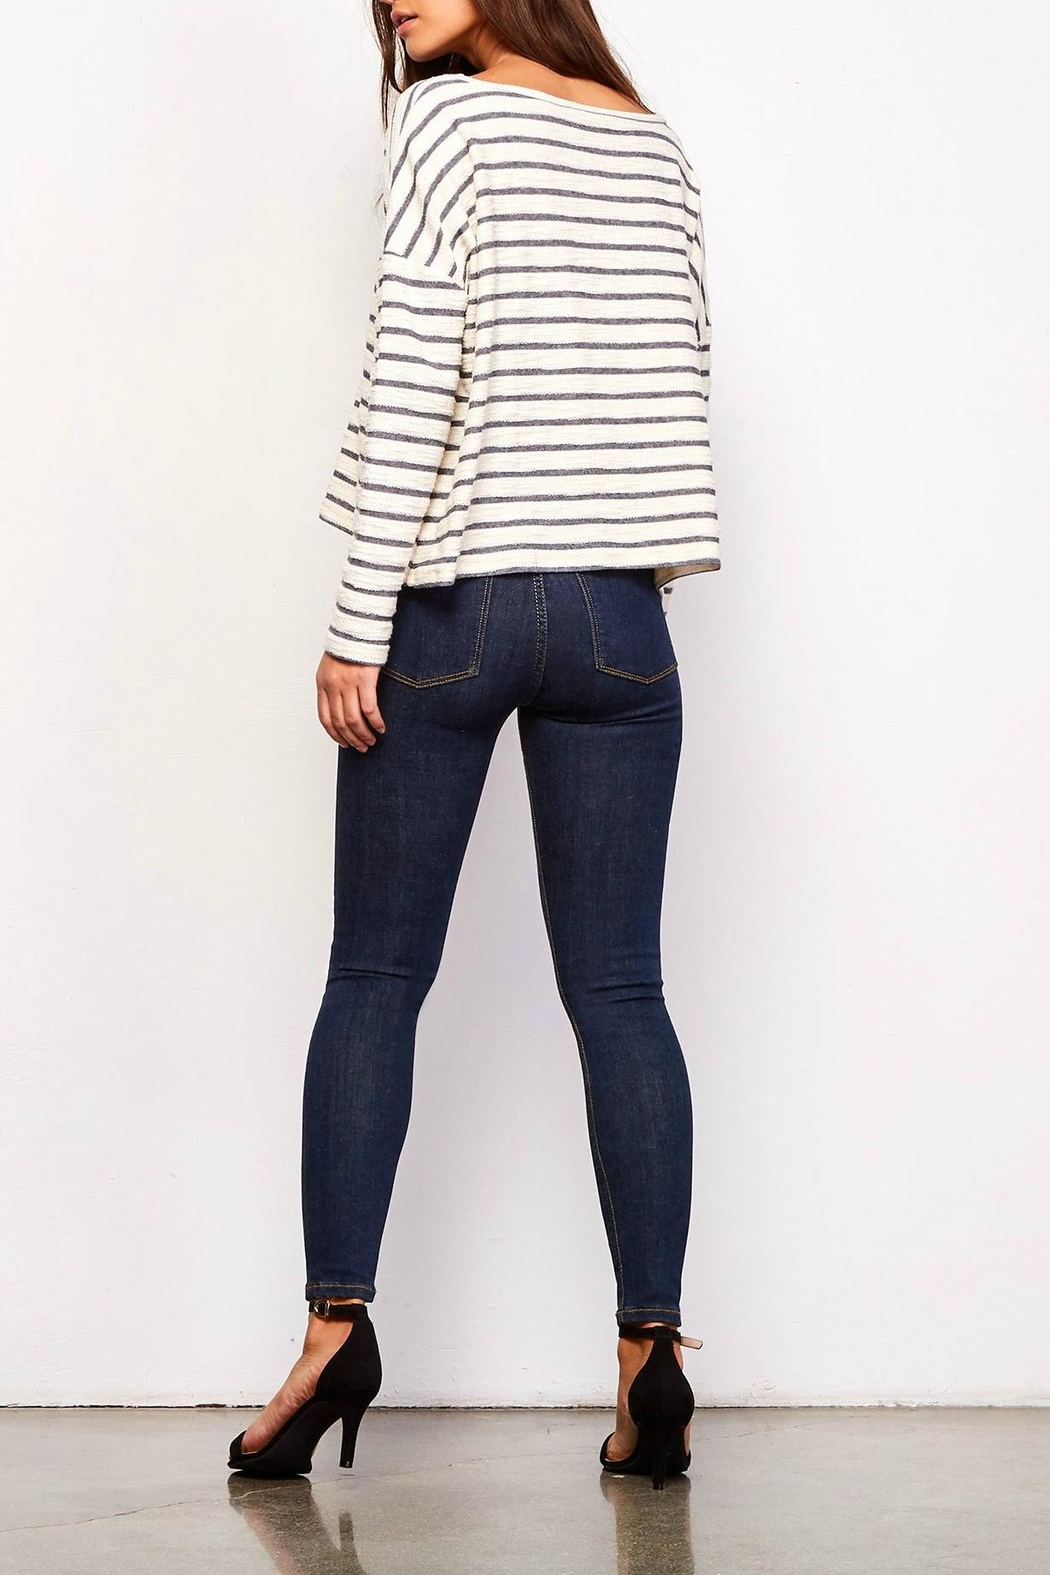 Jack by BB Dakota Allison Striped Sweater - Front Full Image